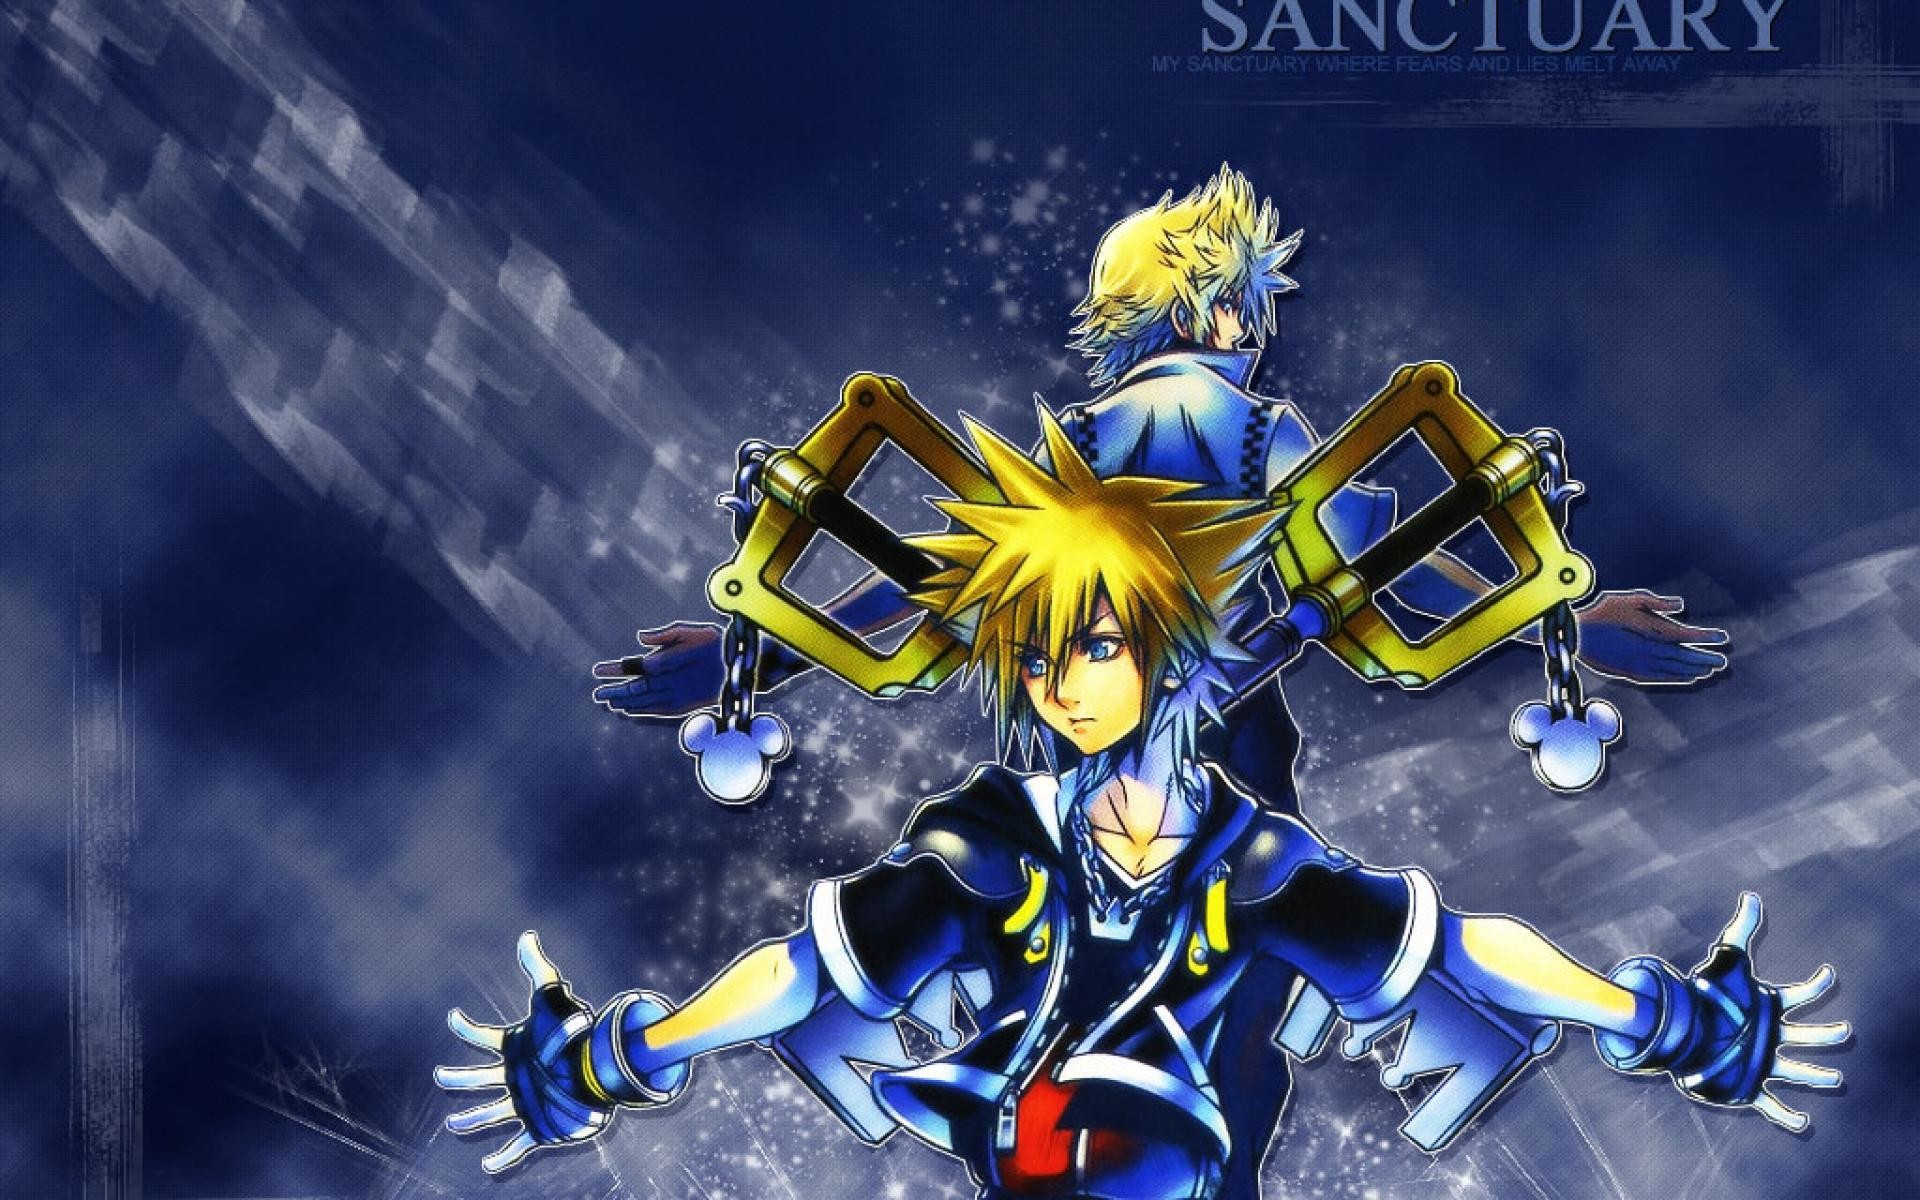 Res: 1920x1200, Kingdom Hearts Sora And Kairi wallpaper